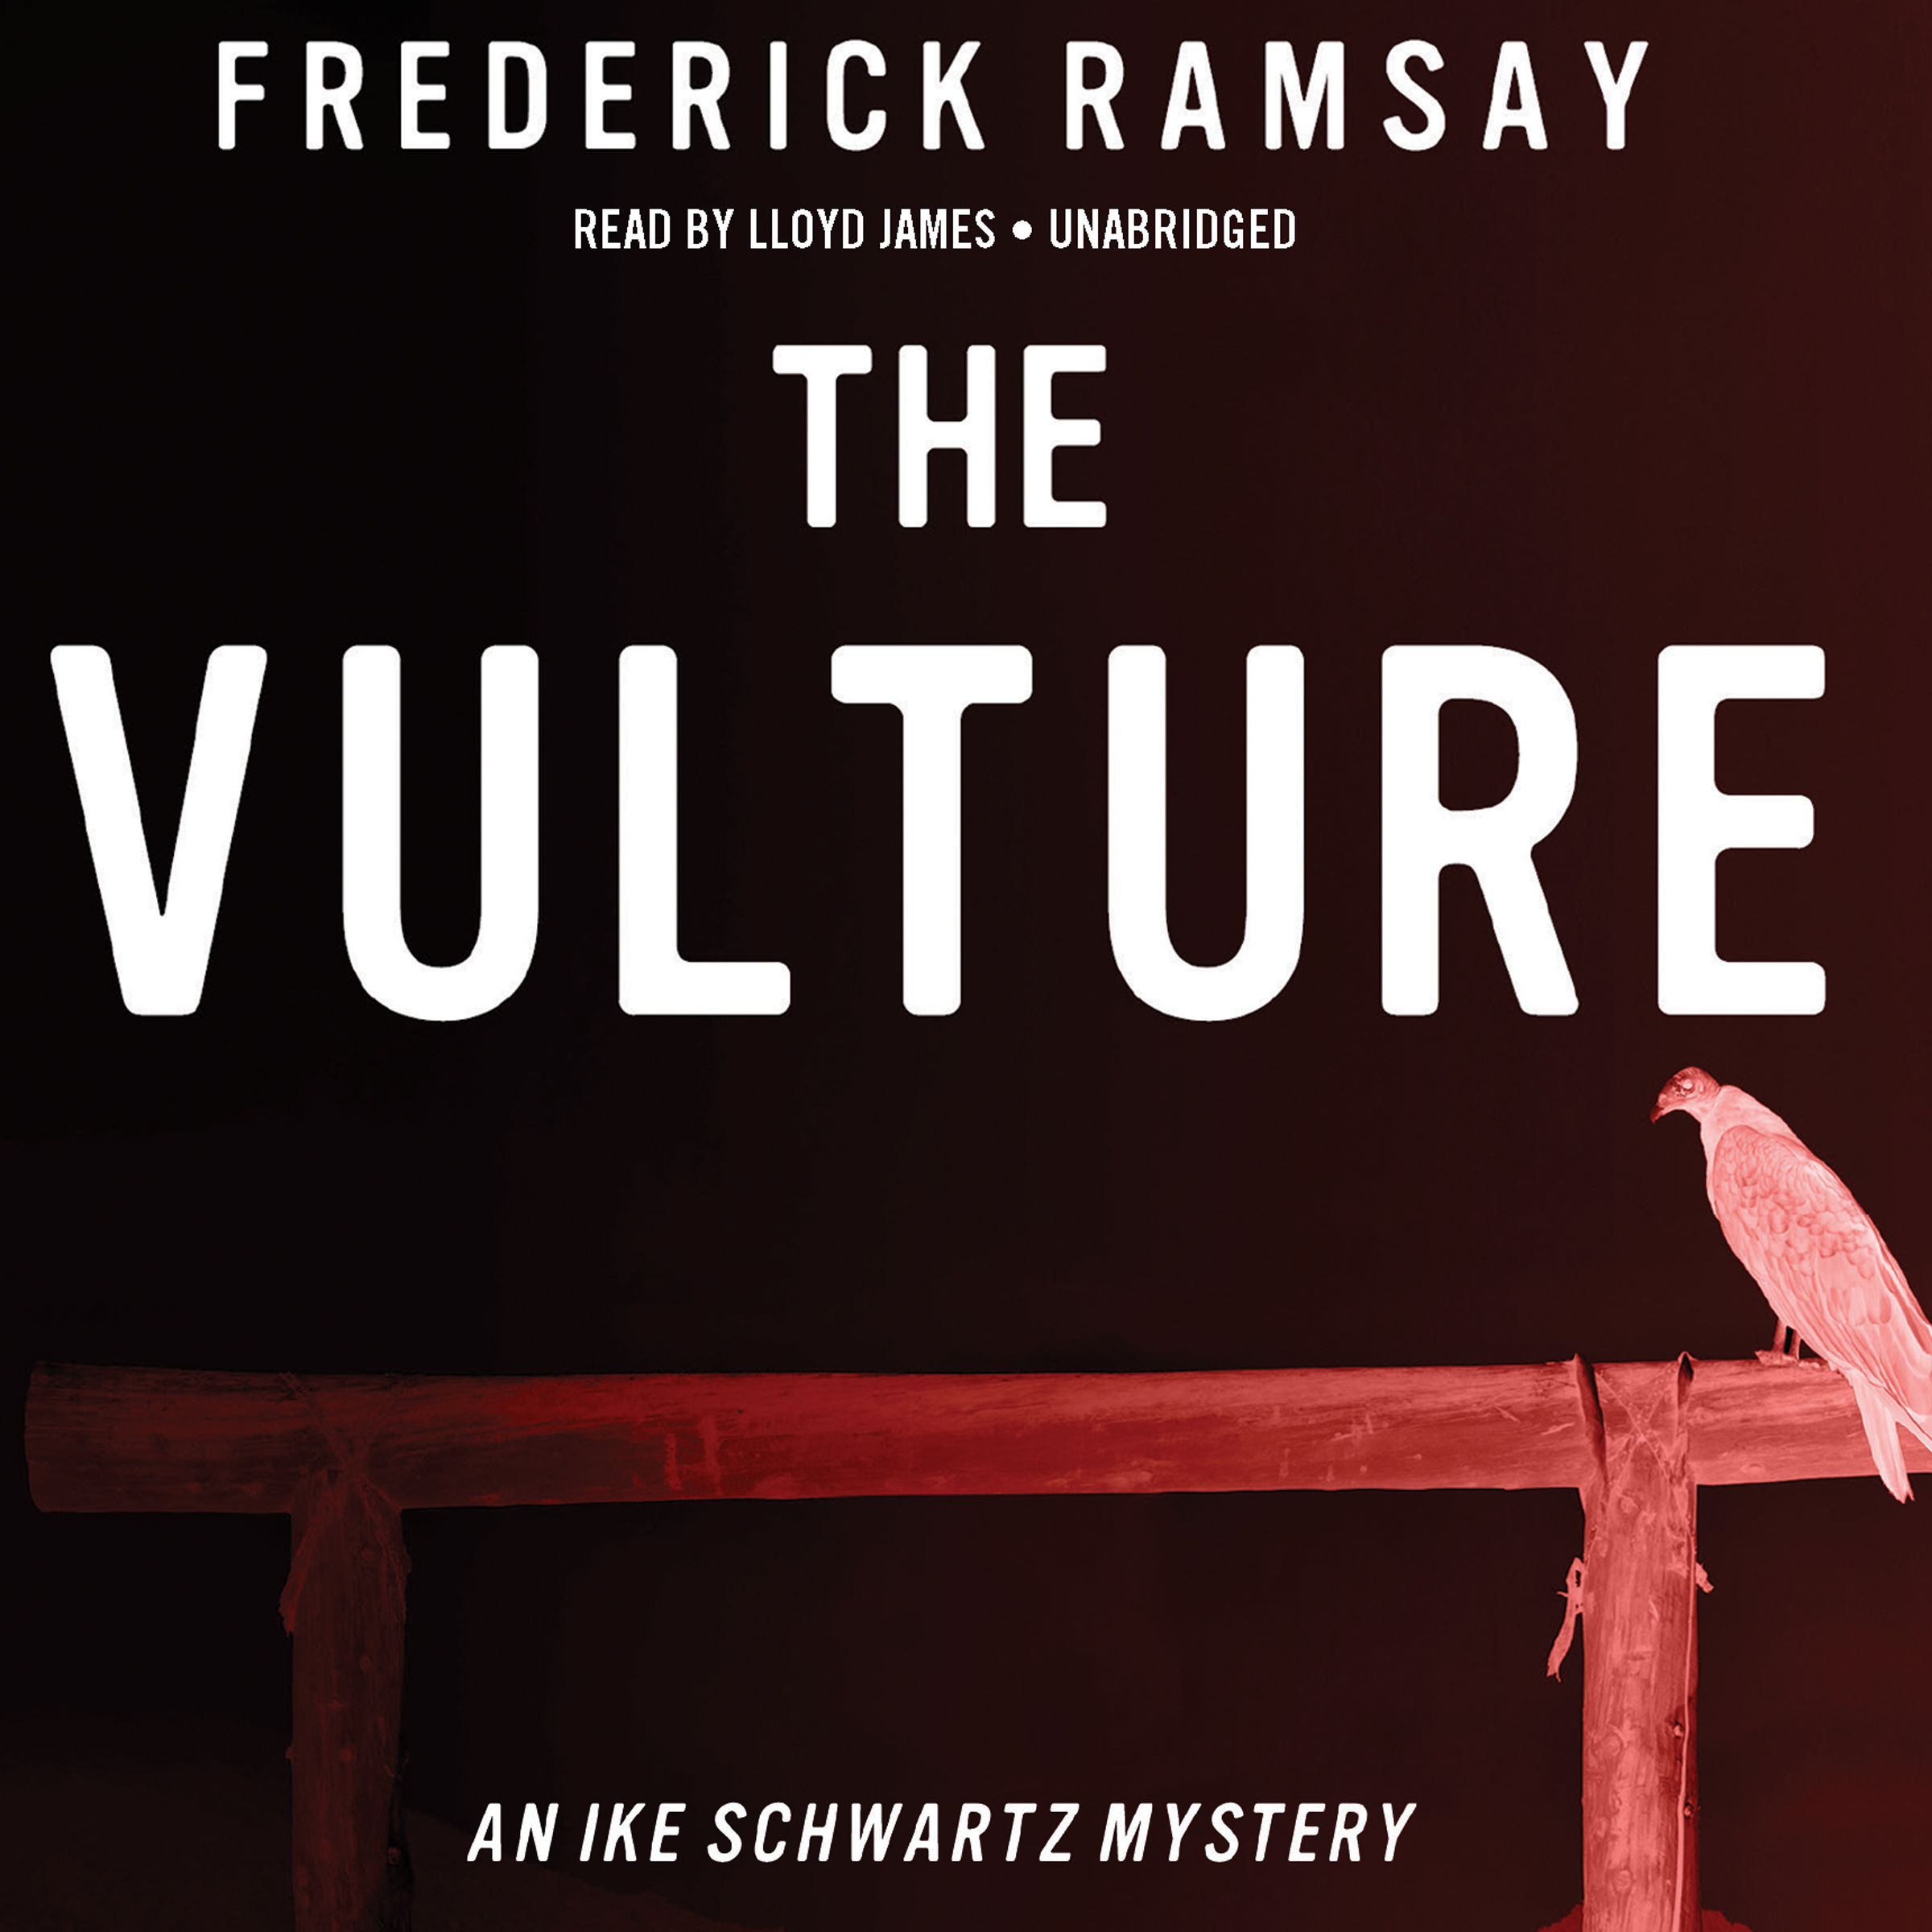 Printable The Vulture: An Ike Schwartz Mystery Audiobook Cover Art